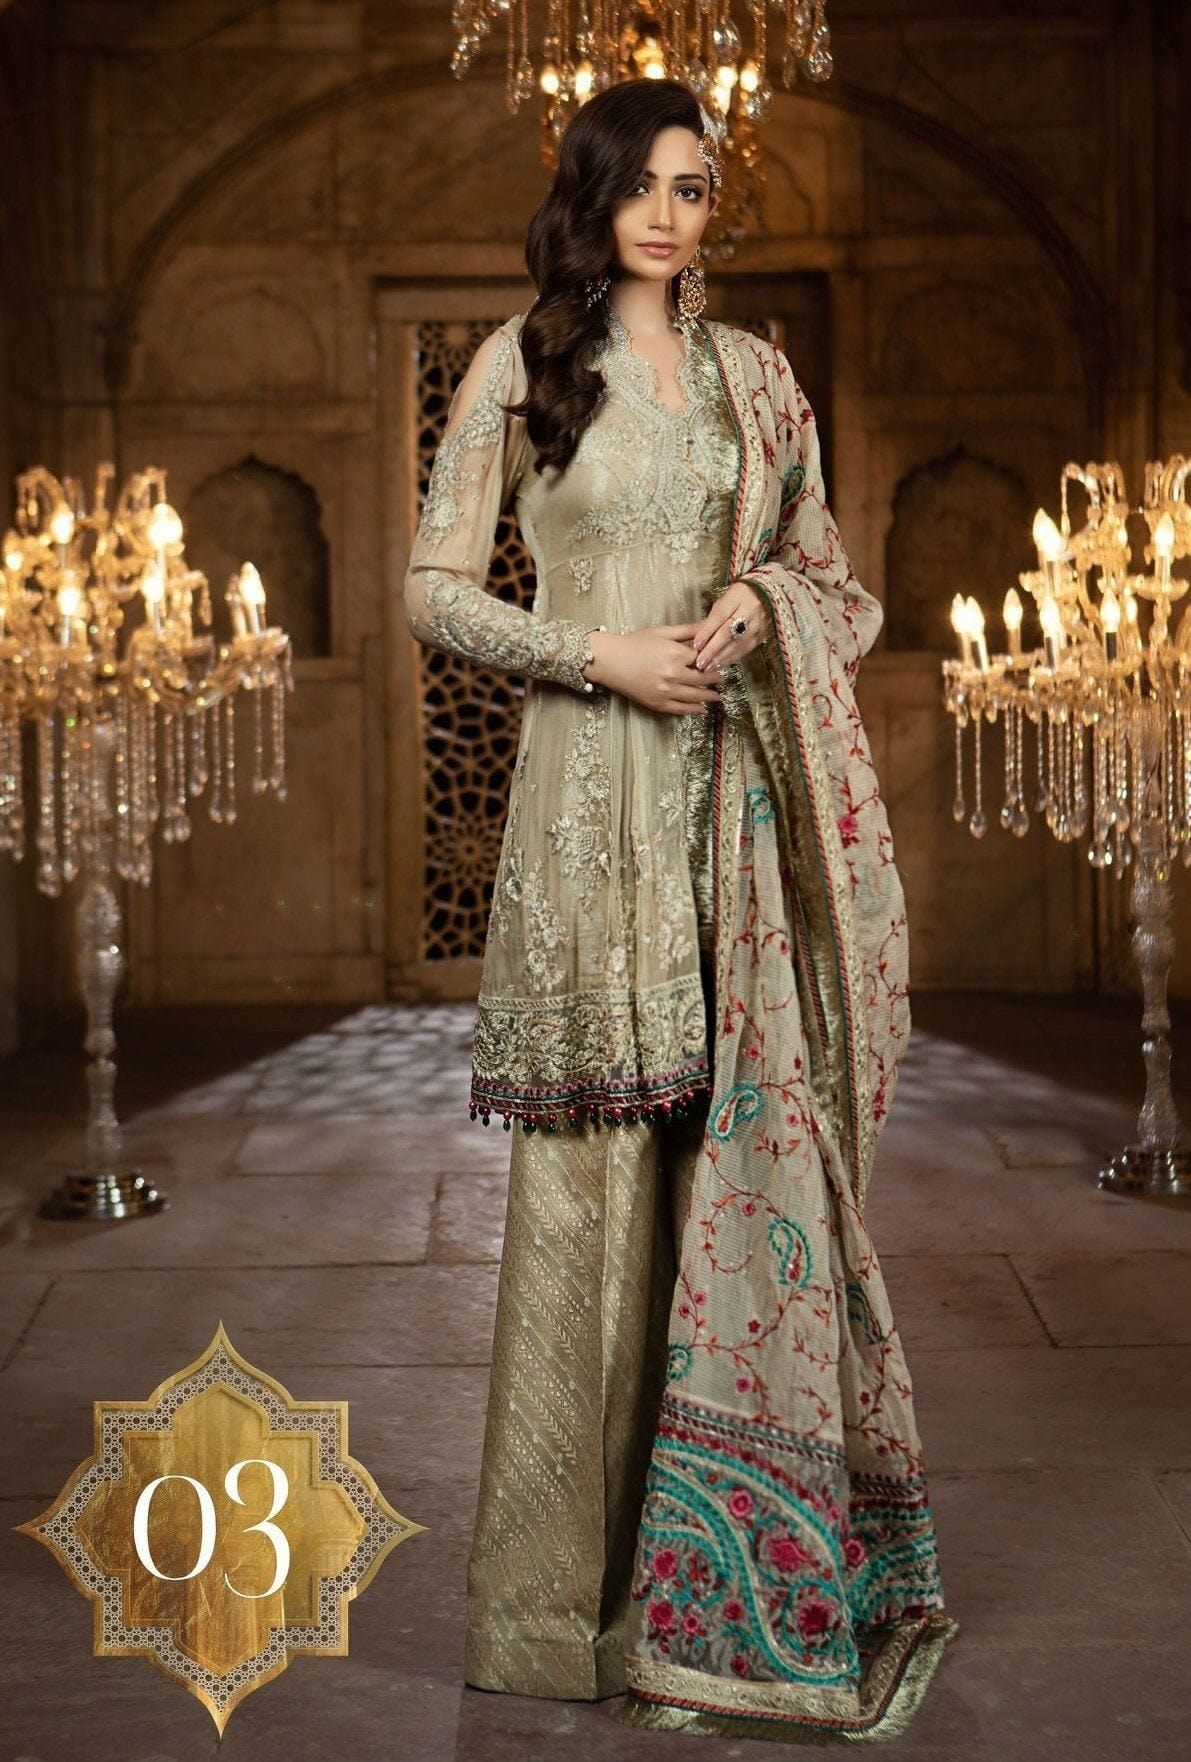 Maria 03-Heavy Embroided 2pc unstiched pure chiffon dress with embroided chiffon dupatta. - gracestore.pk